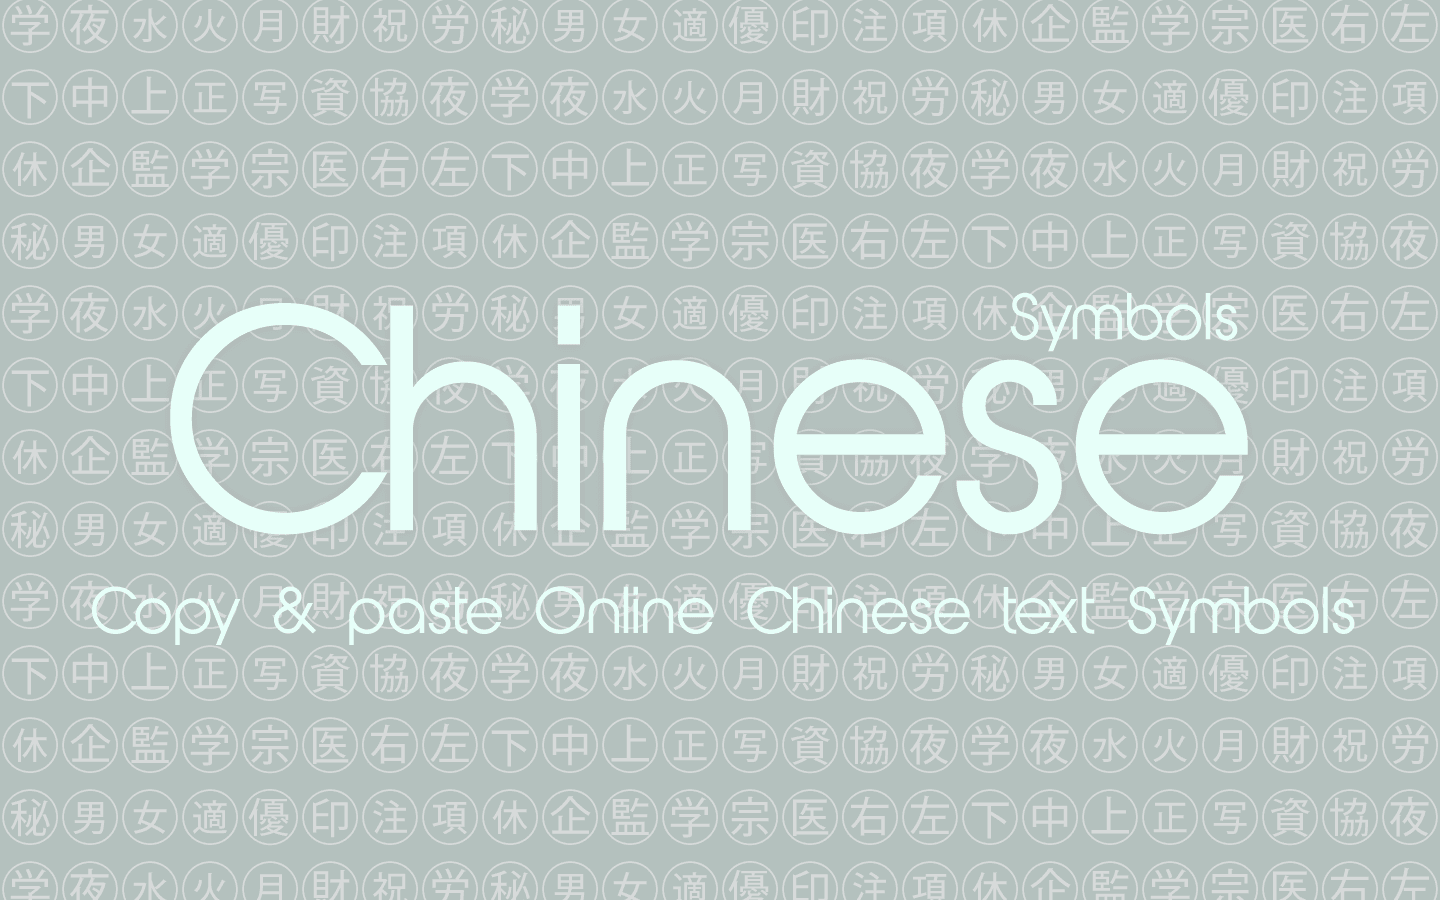 Chinese Symbols - ㊒㊚㊖㊰ Copy And Share Online Chinese Symbols